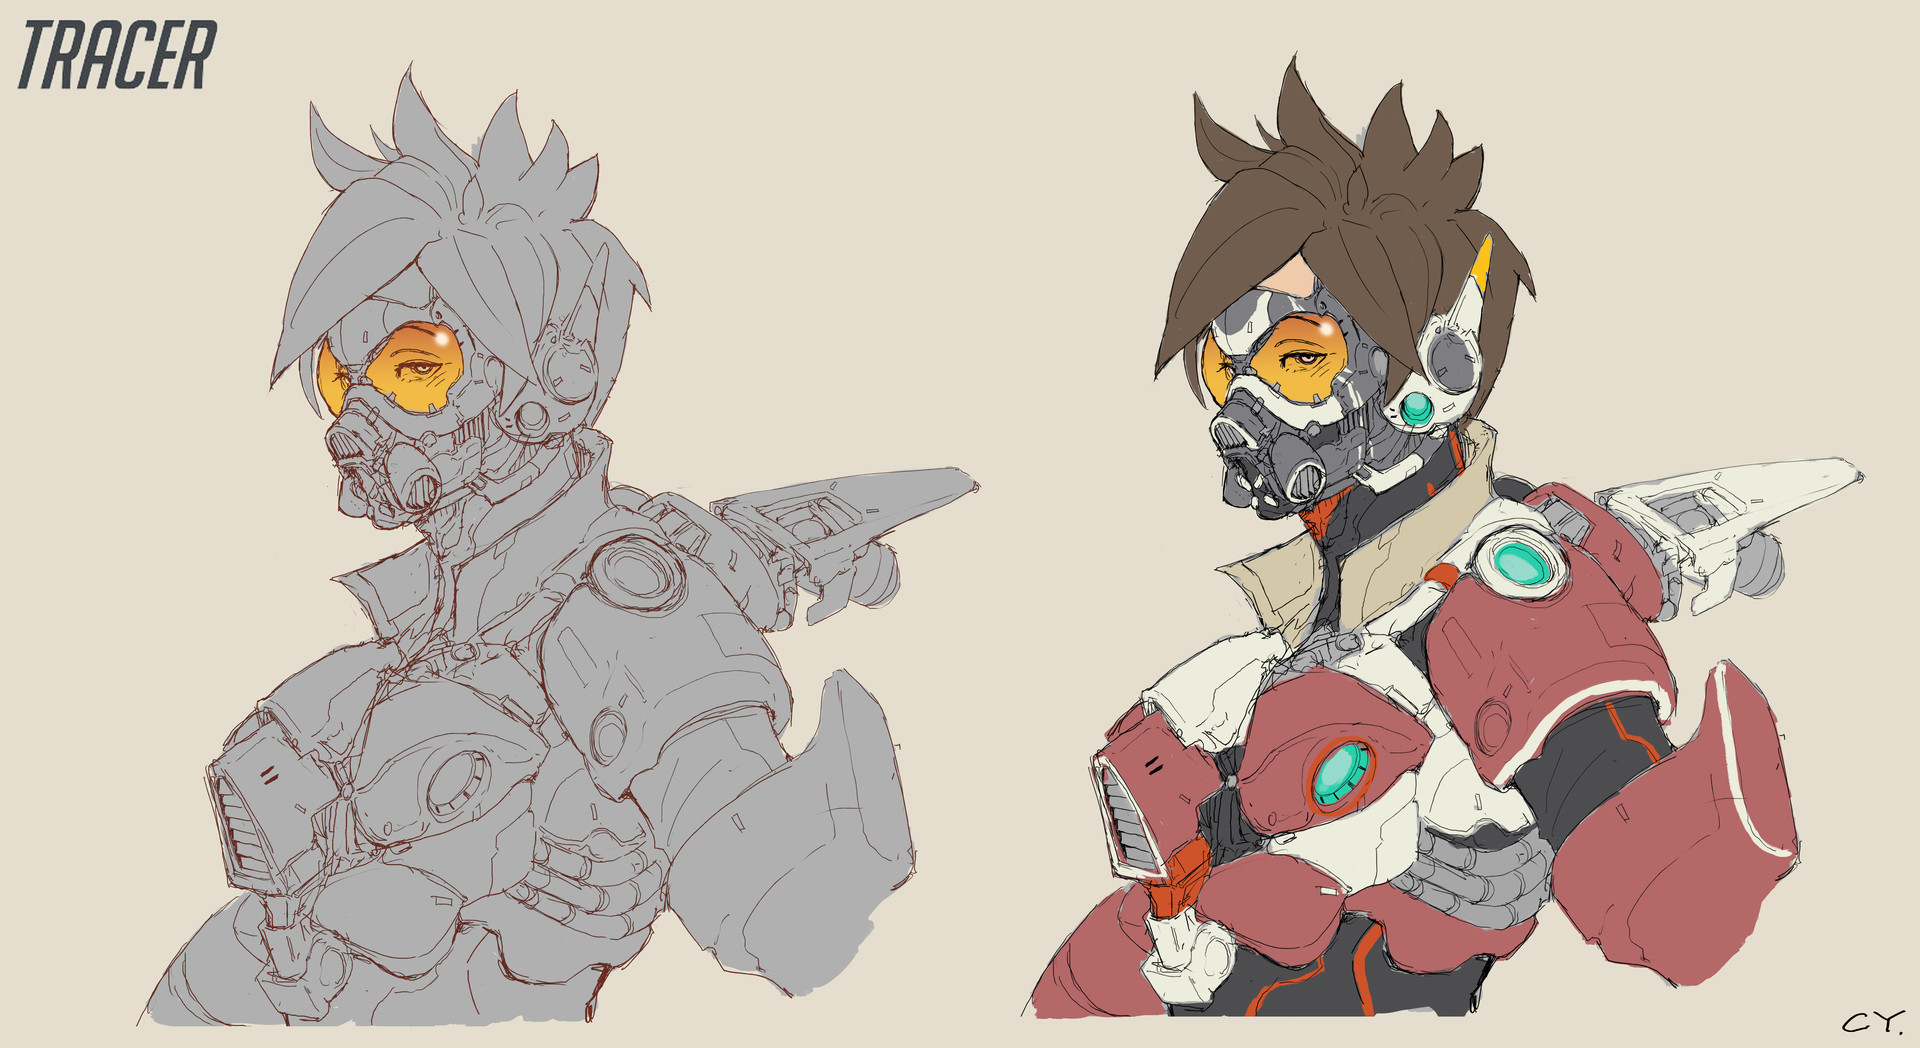 Ching yeh tracer